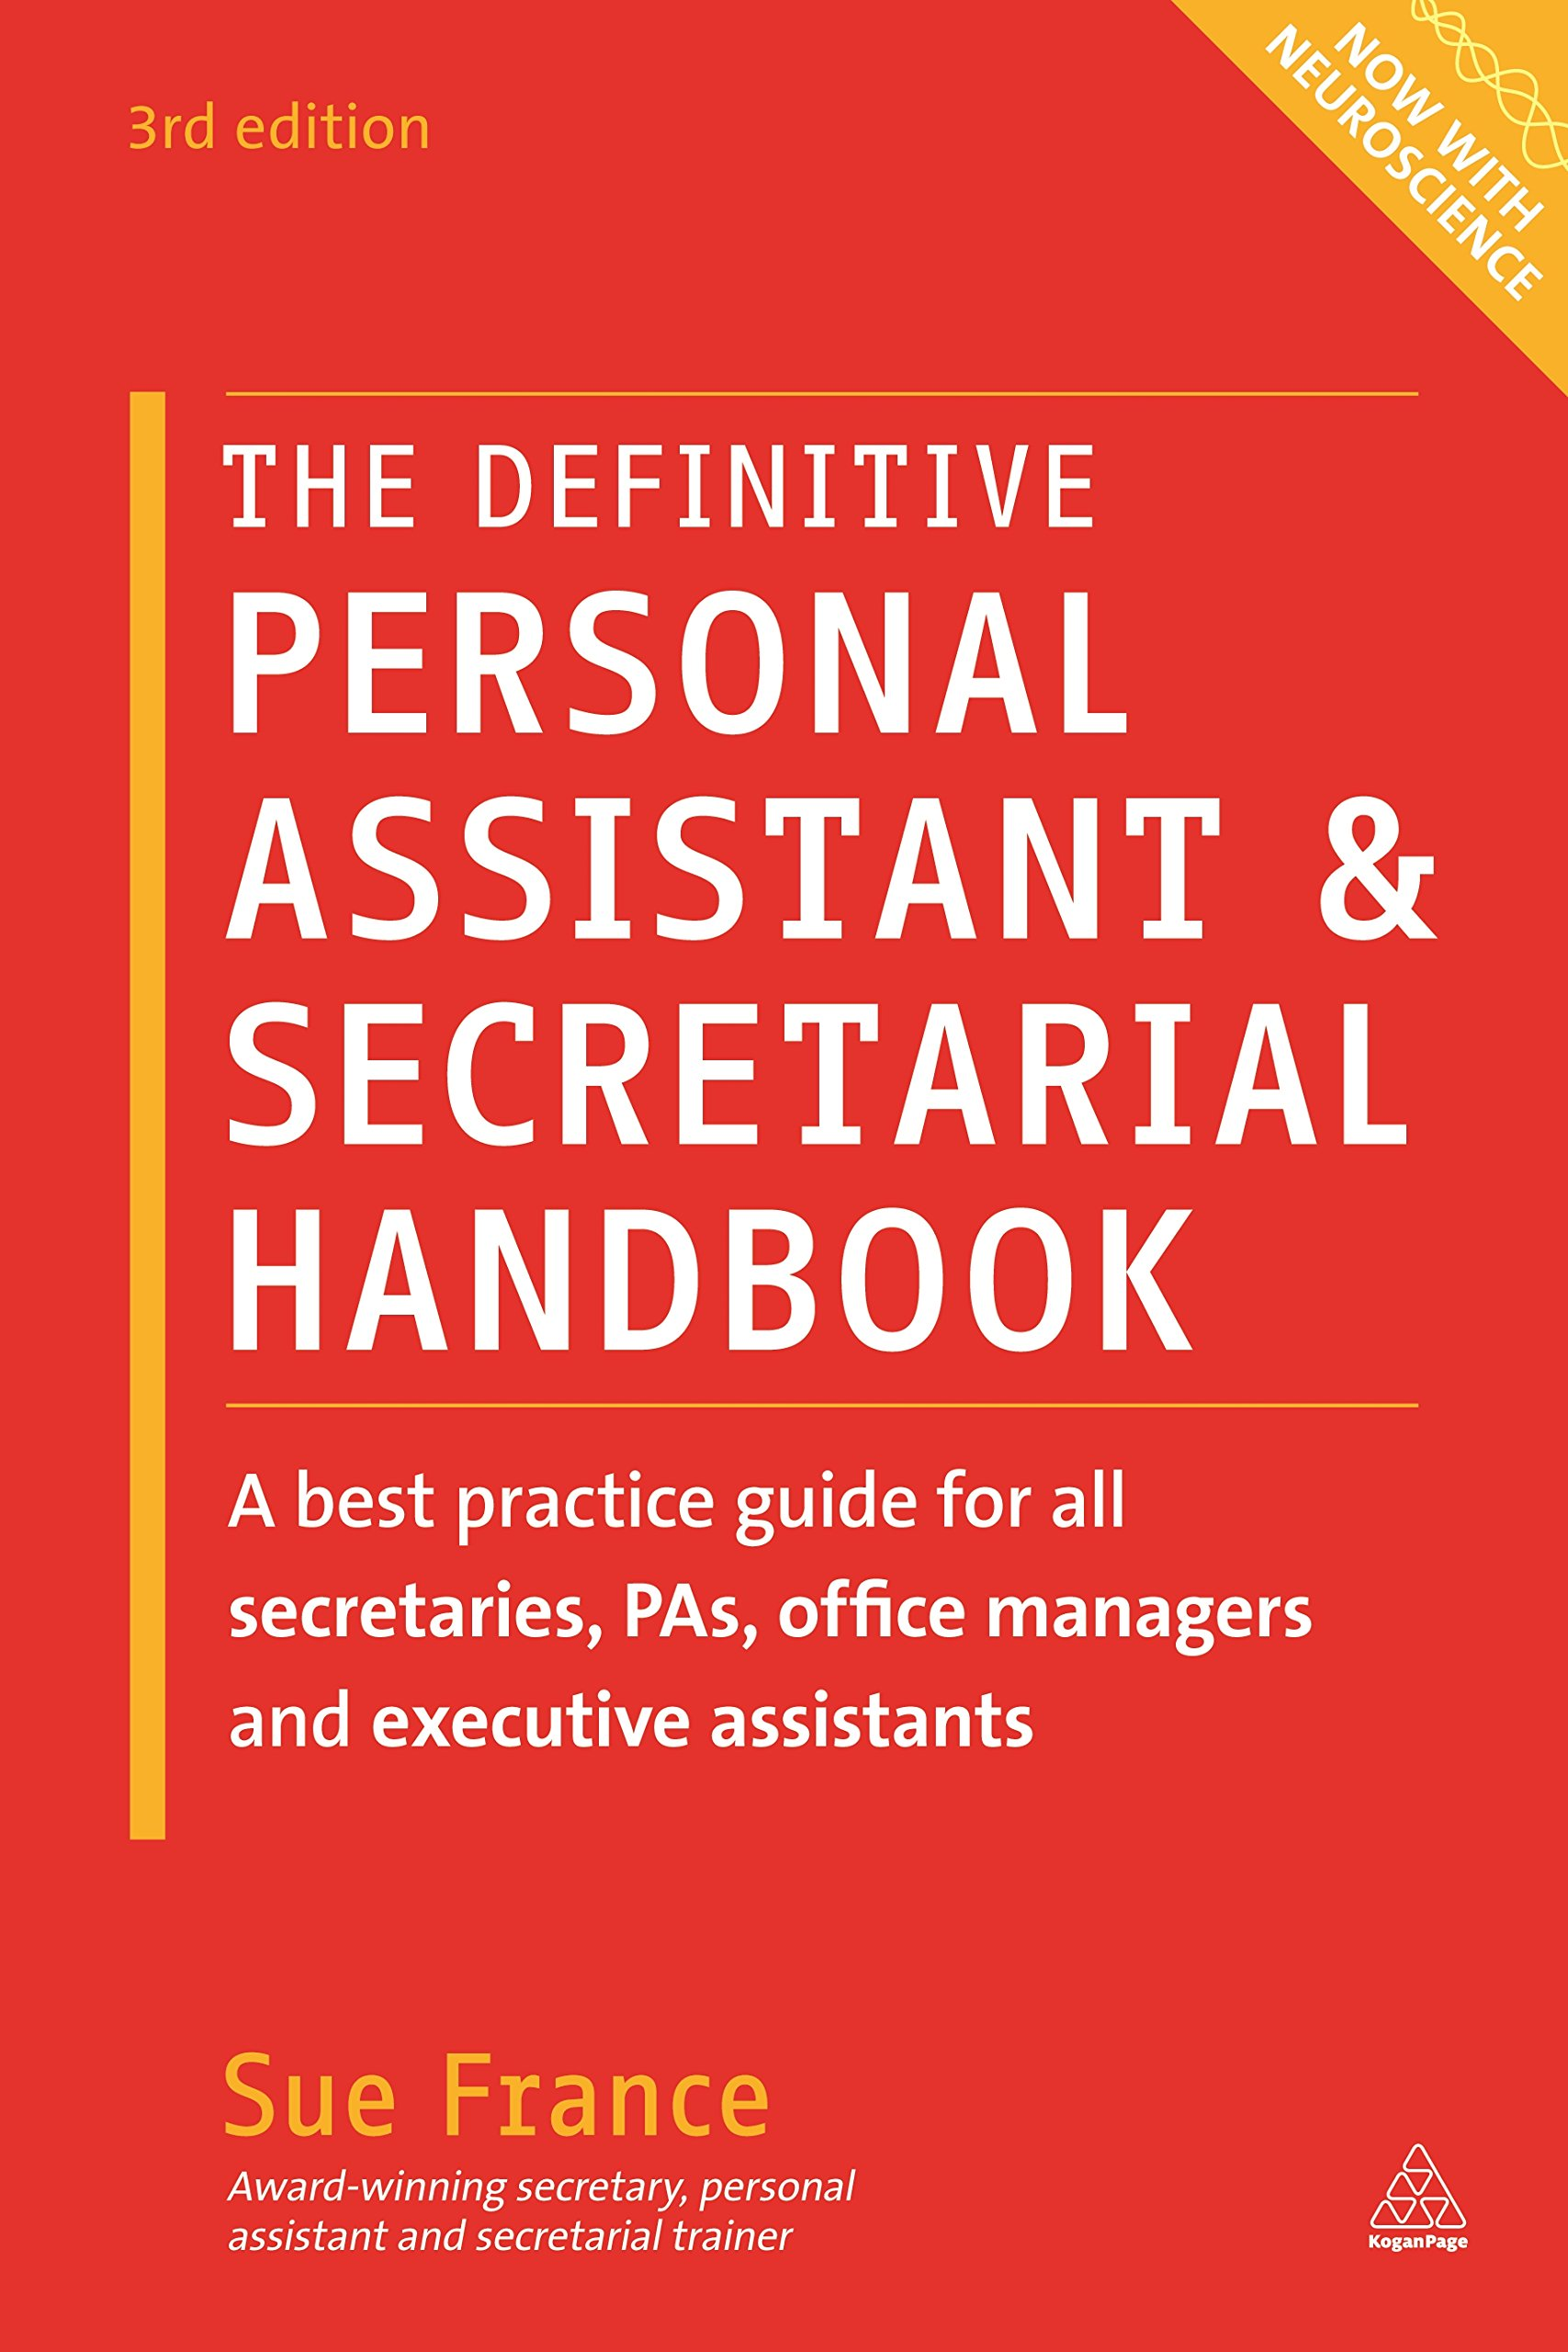 Amazon.com: The Definitive Personal Assistant & Secretarial Handbook: A  Best Practice Guide for All Secretaries, PAs, Office Managers and Executive  ...